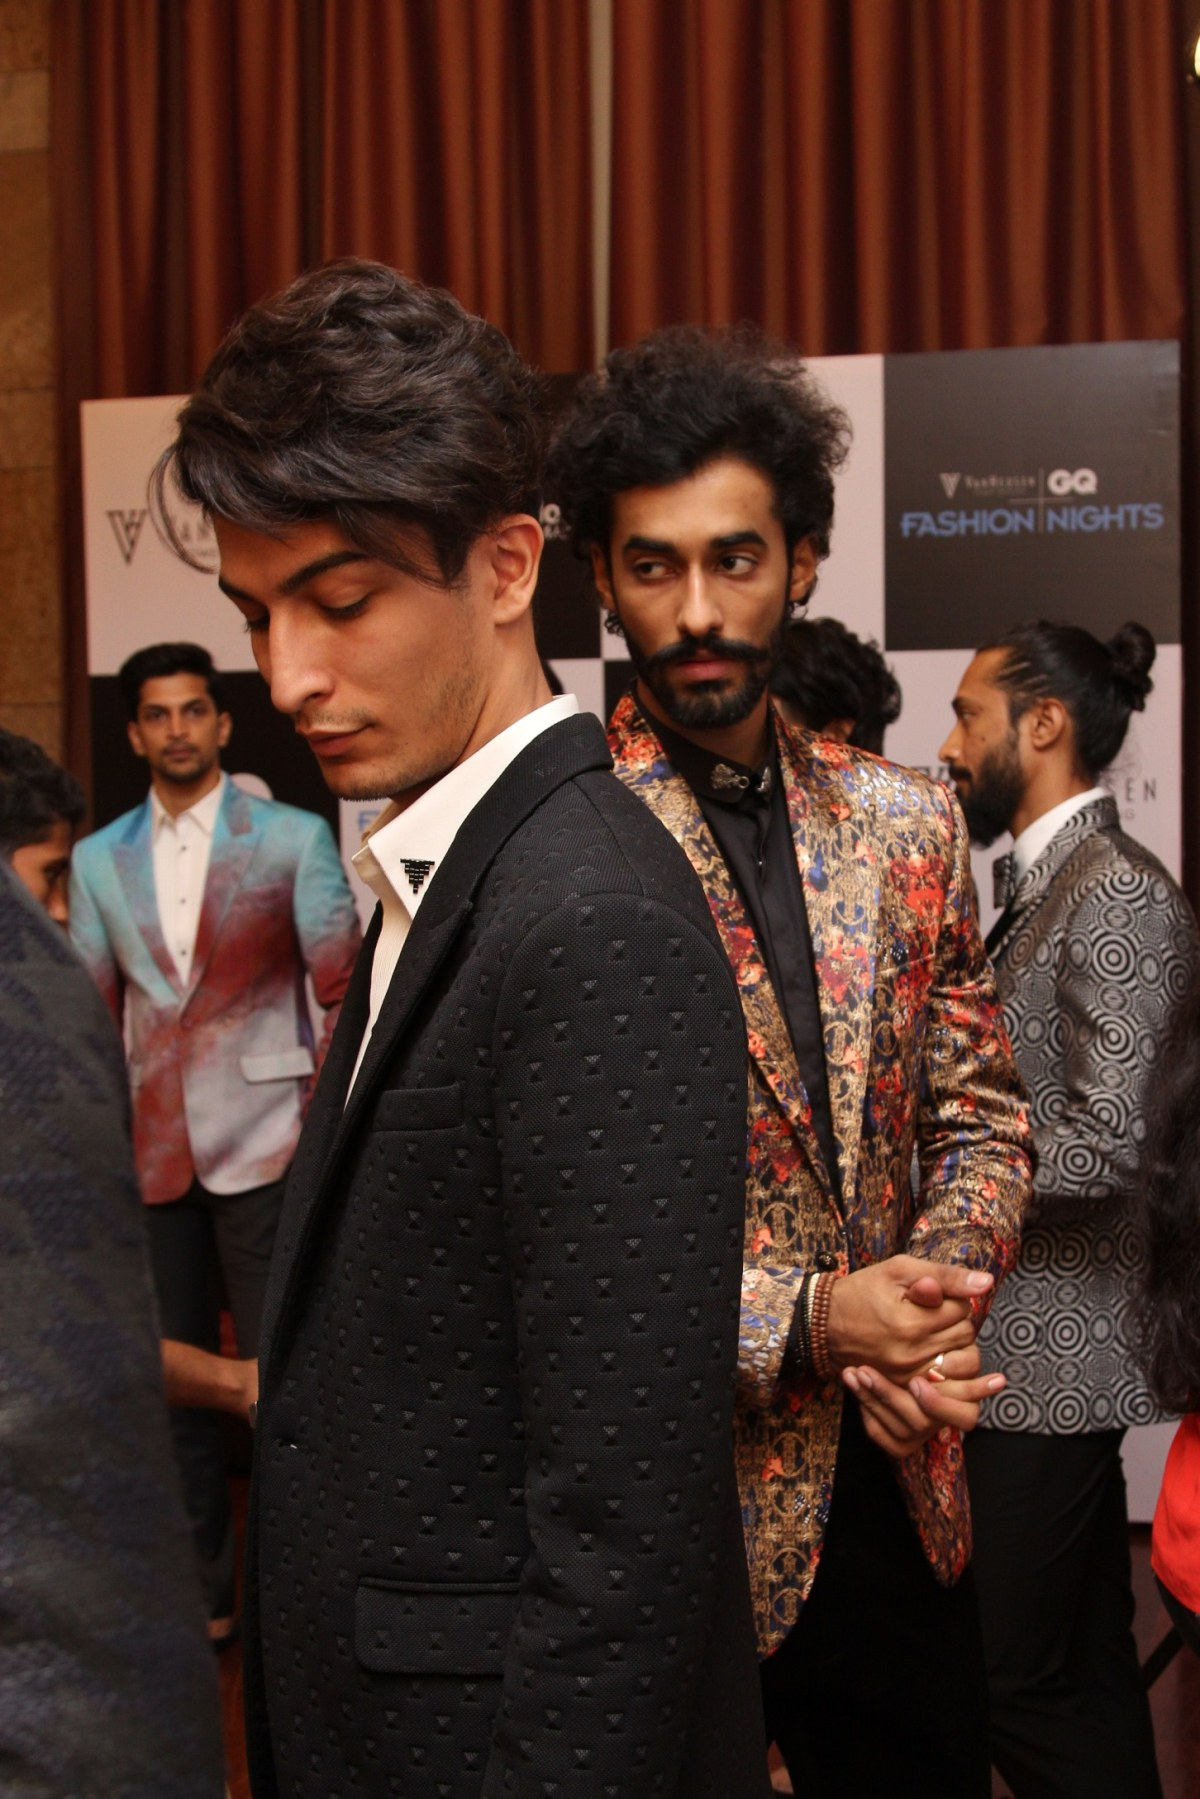 Troy Costa at Day  1 fittings for Van Heusen + GQ Fashion Nights _1